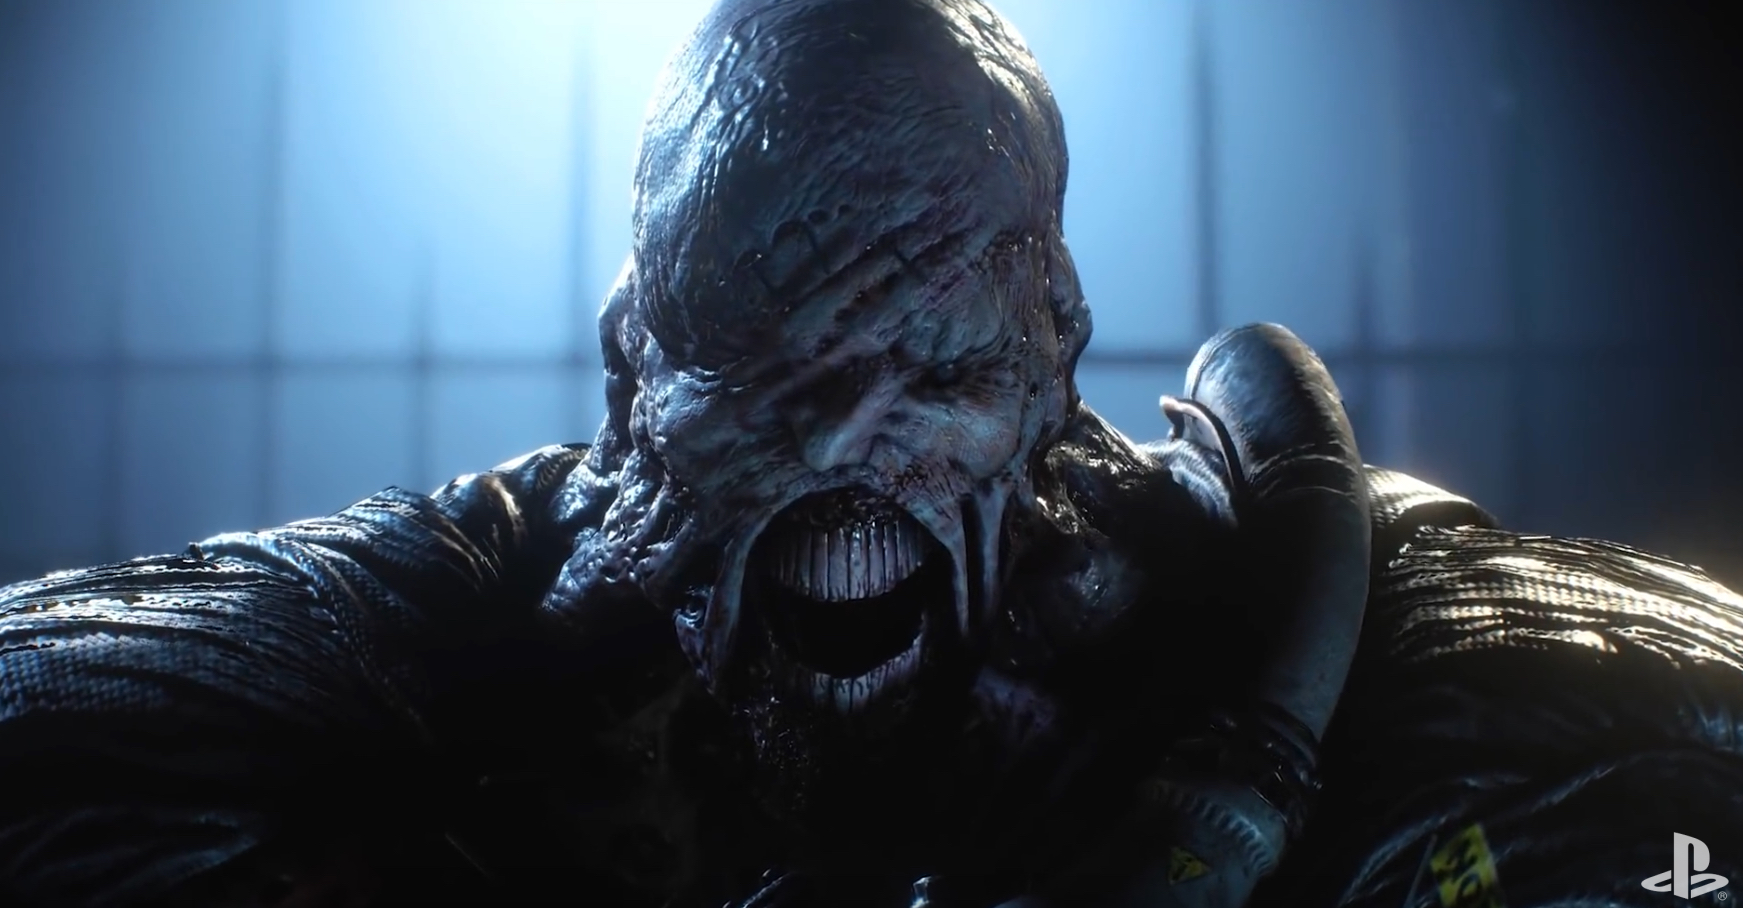 Resident Evil 3 Remake Demo Will Be Available On March 19th, According To Capcom